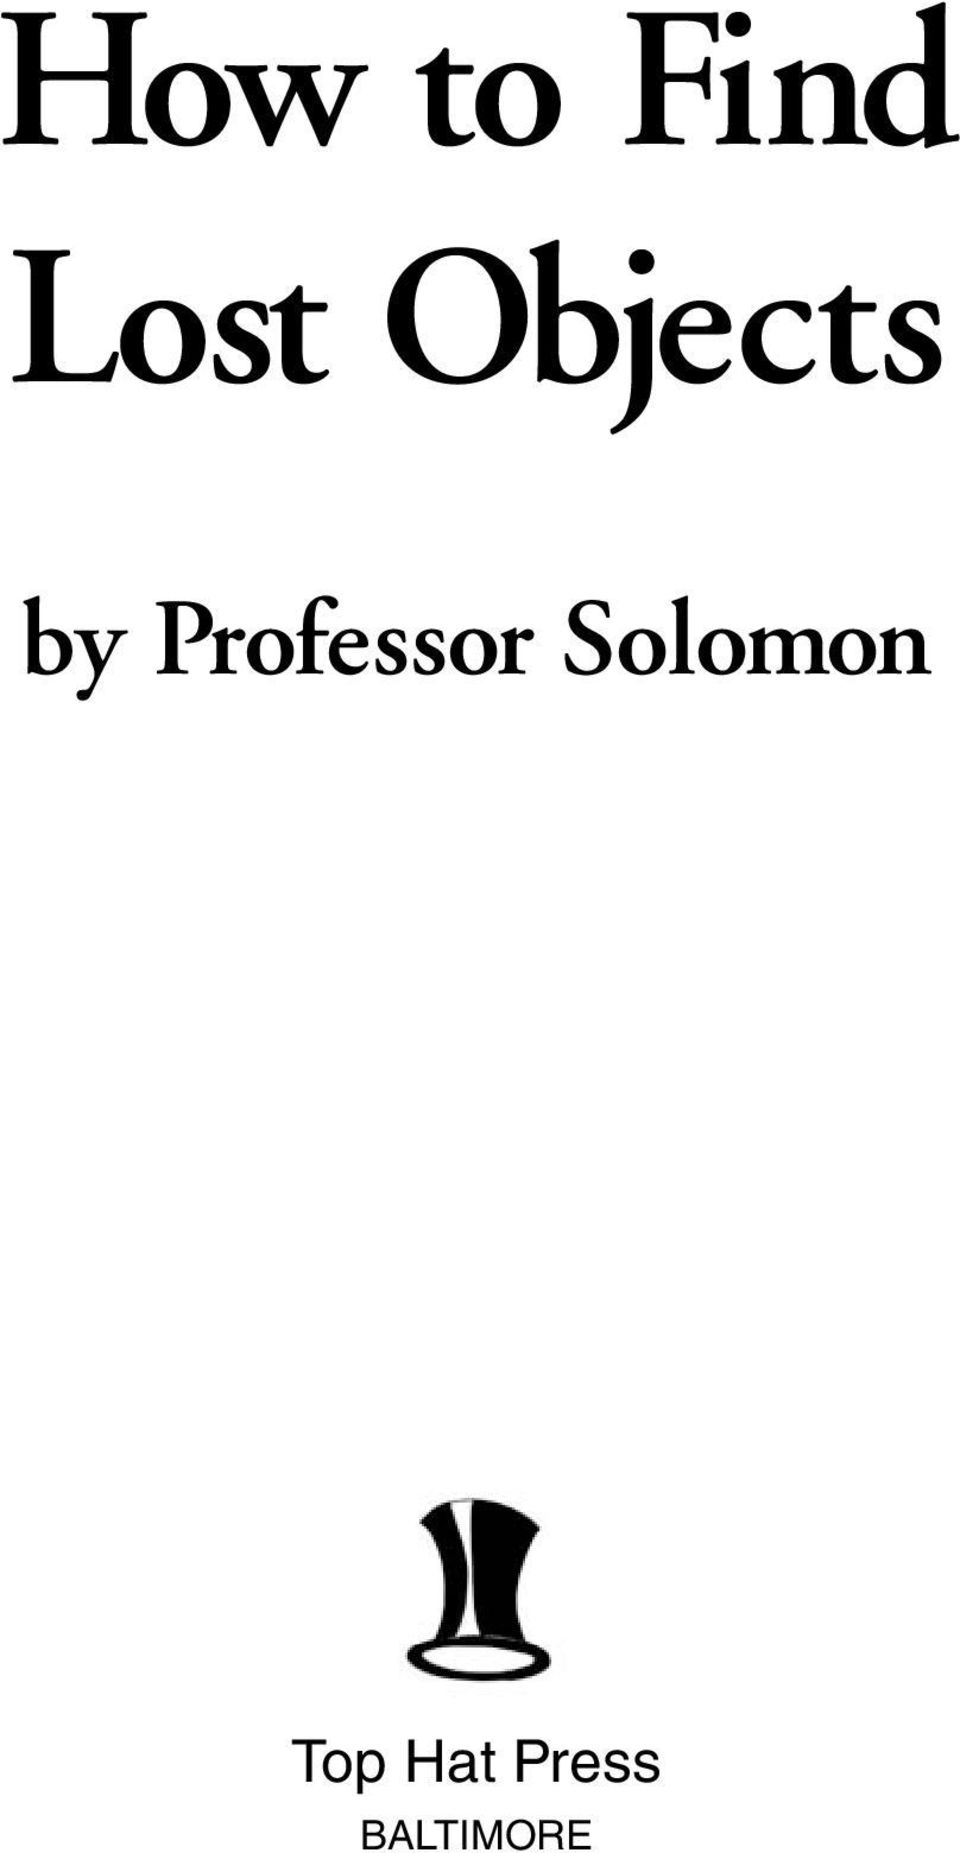 Professor Solomon